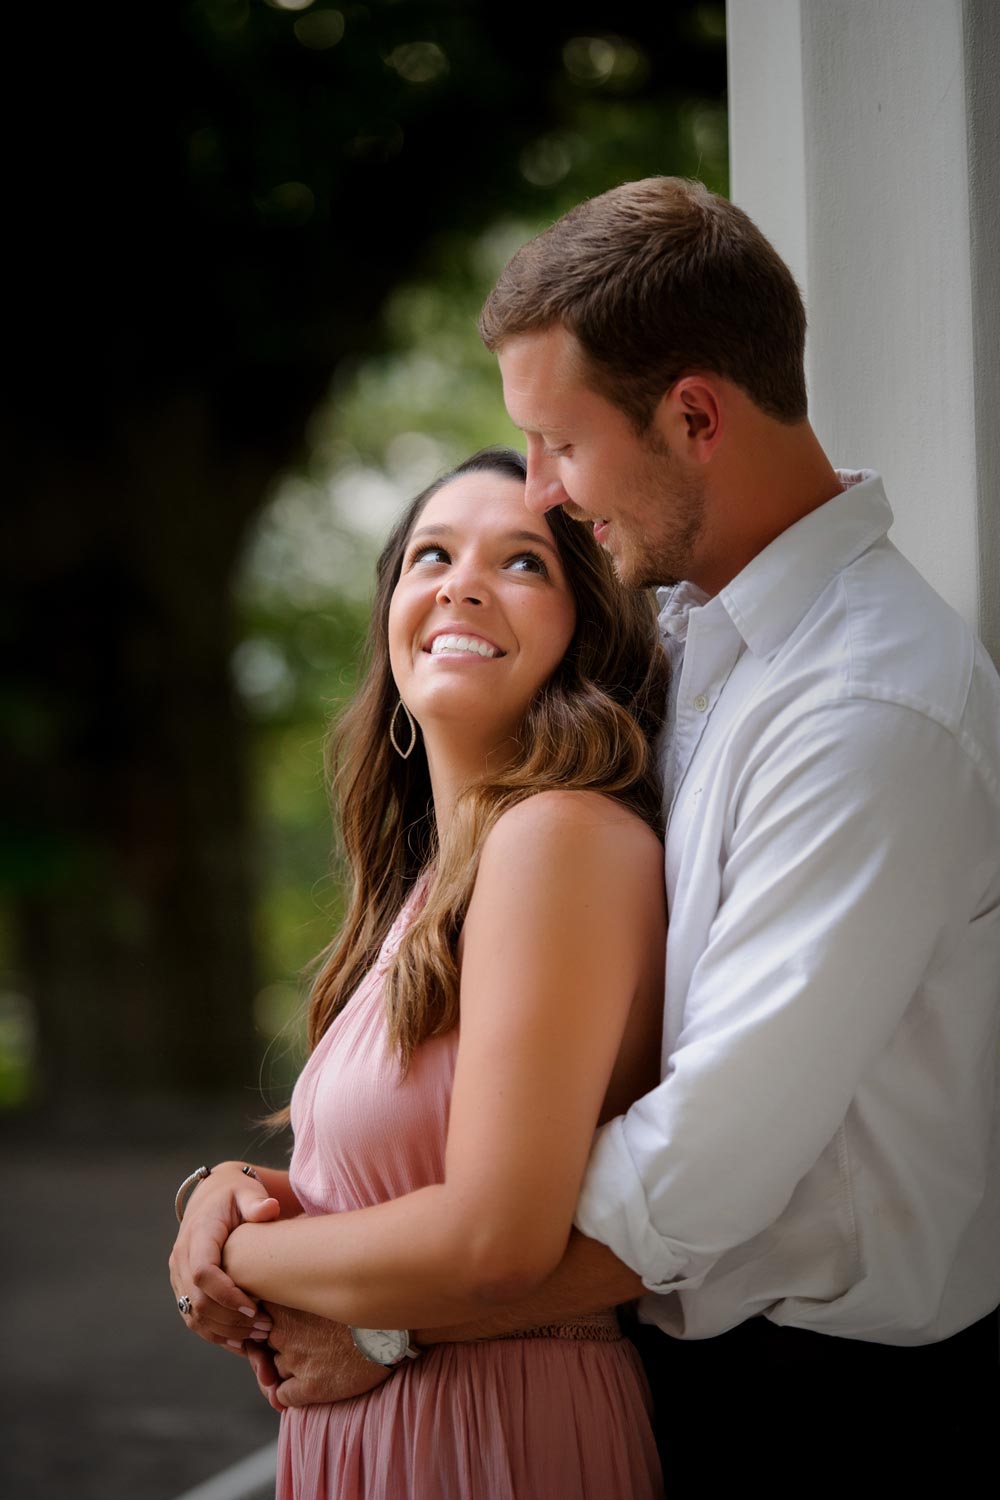 engagement-portraits-scott-walz-studio-walz44.jpg